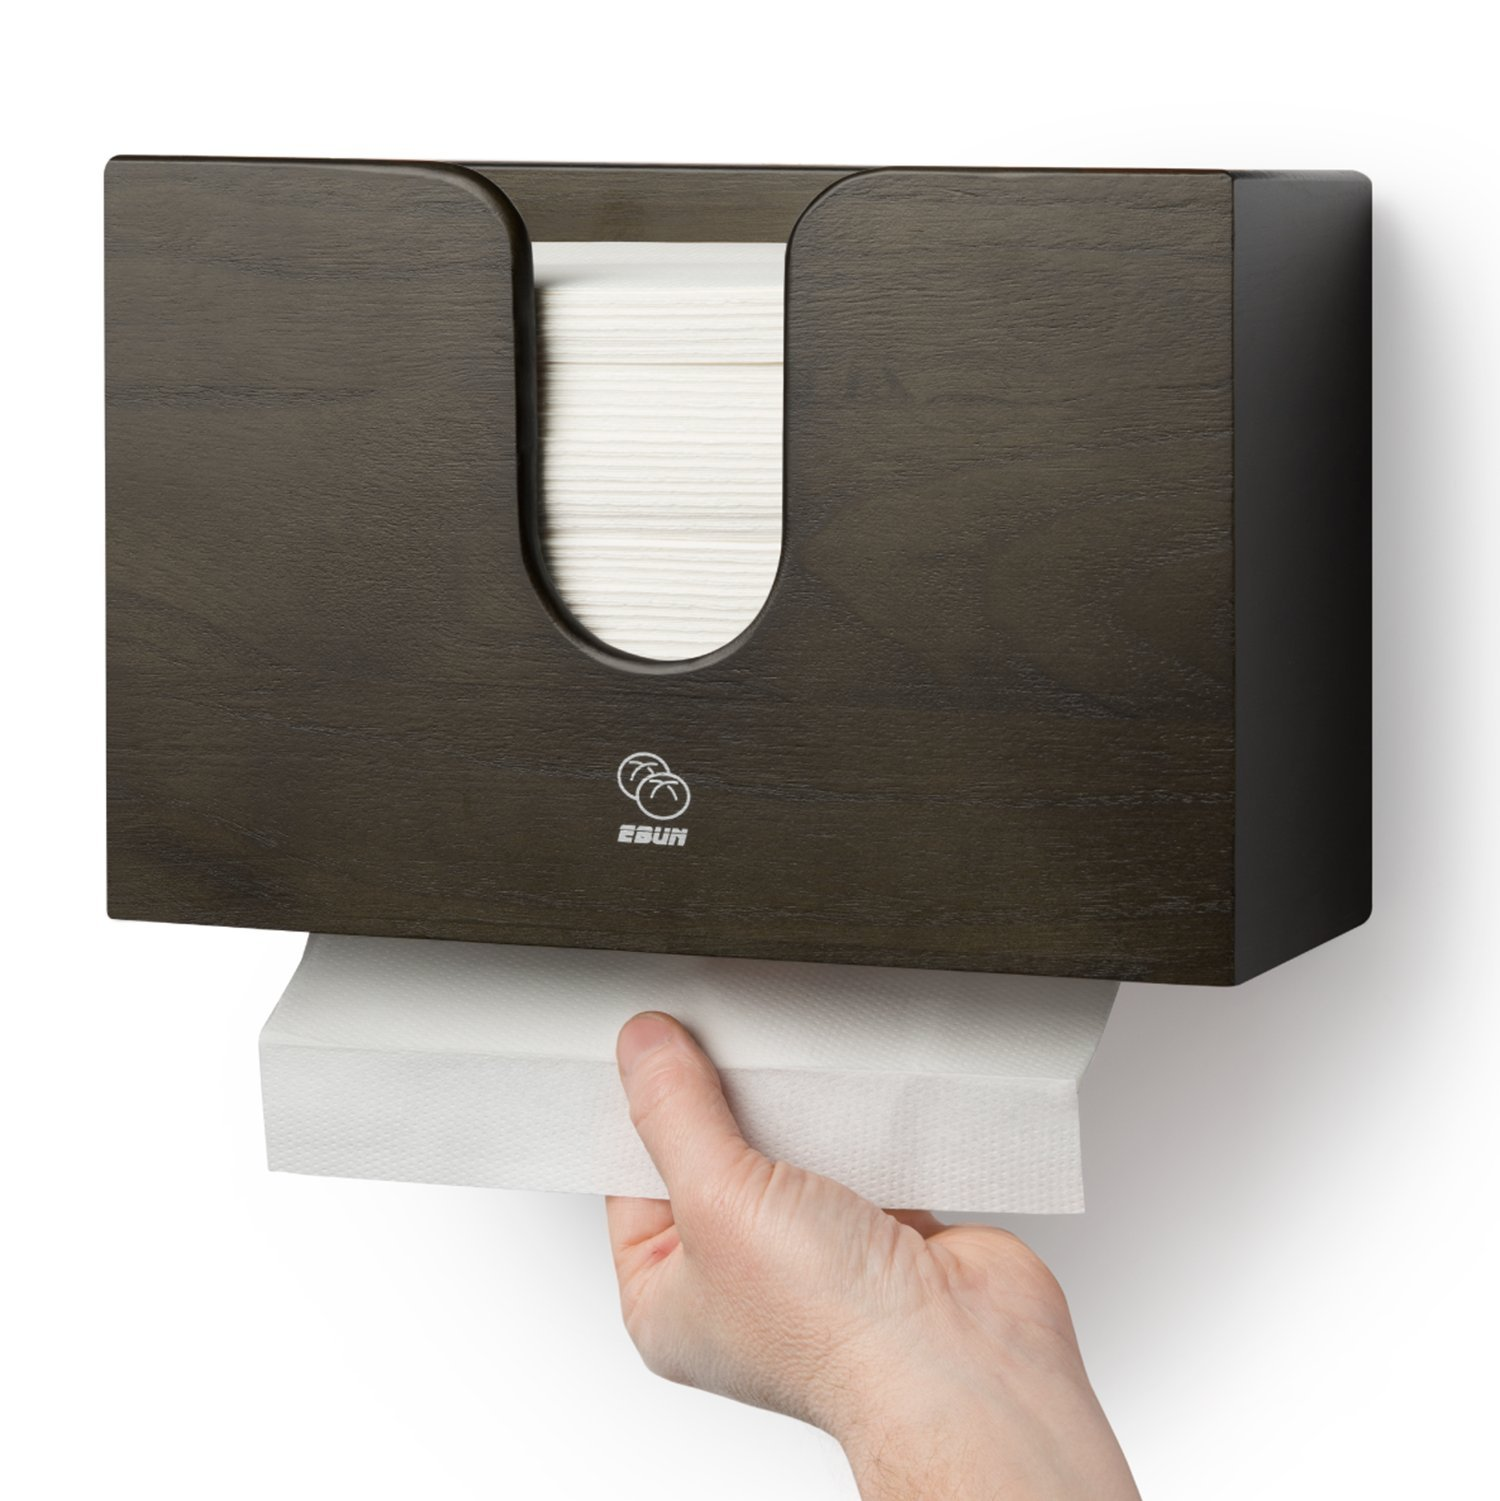 Wooden Paper Towel Dispenser for Kitchen & Bathroom - Wall Mount/Countertop Multifold Paper Towel, C-Fold, Zfold, Tri fold Hand Towel Holder Commercial (Brown)